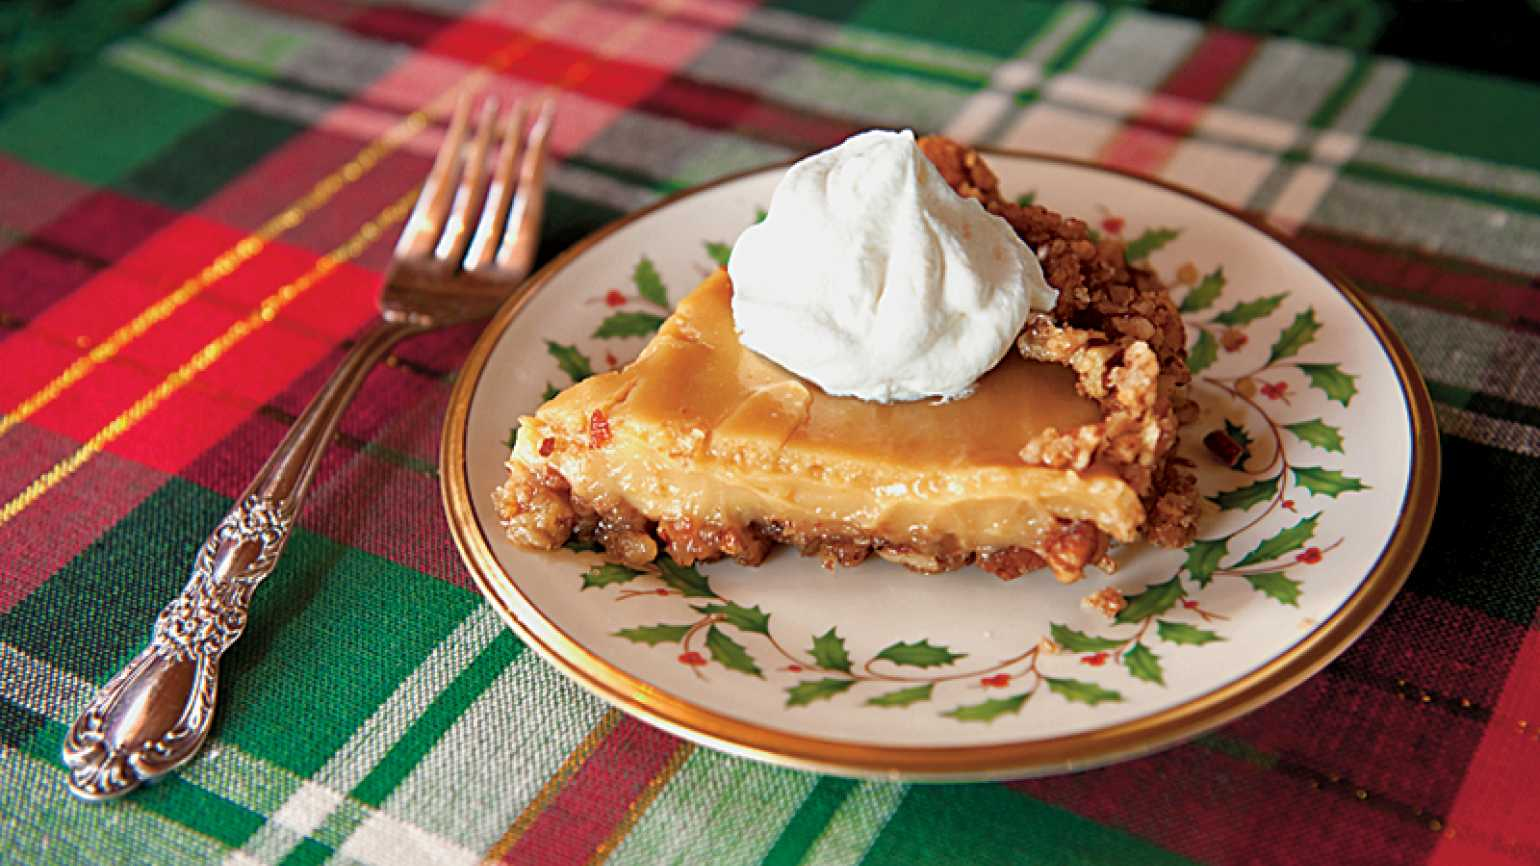 Dolly Parton's Butterscotch Pie